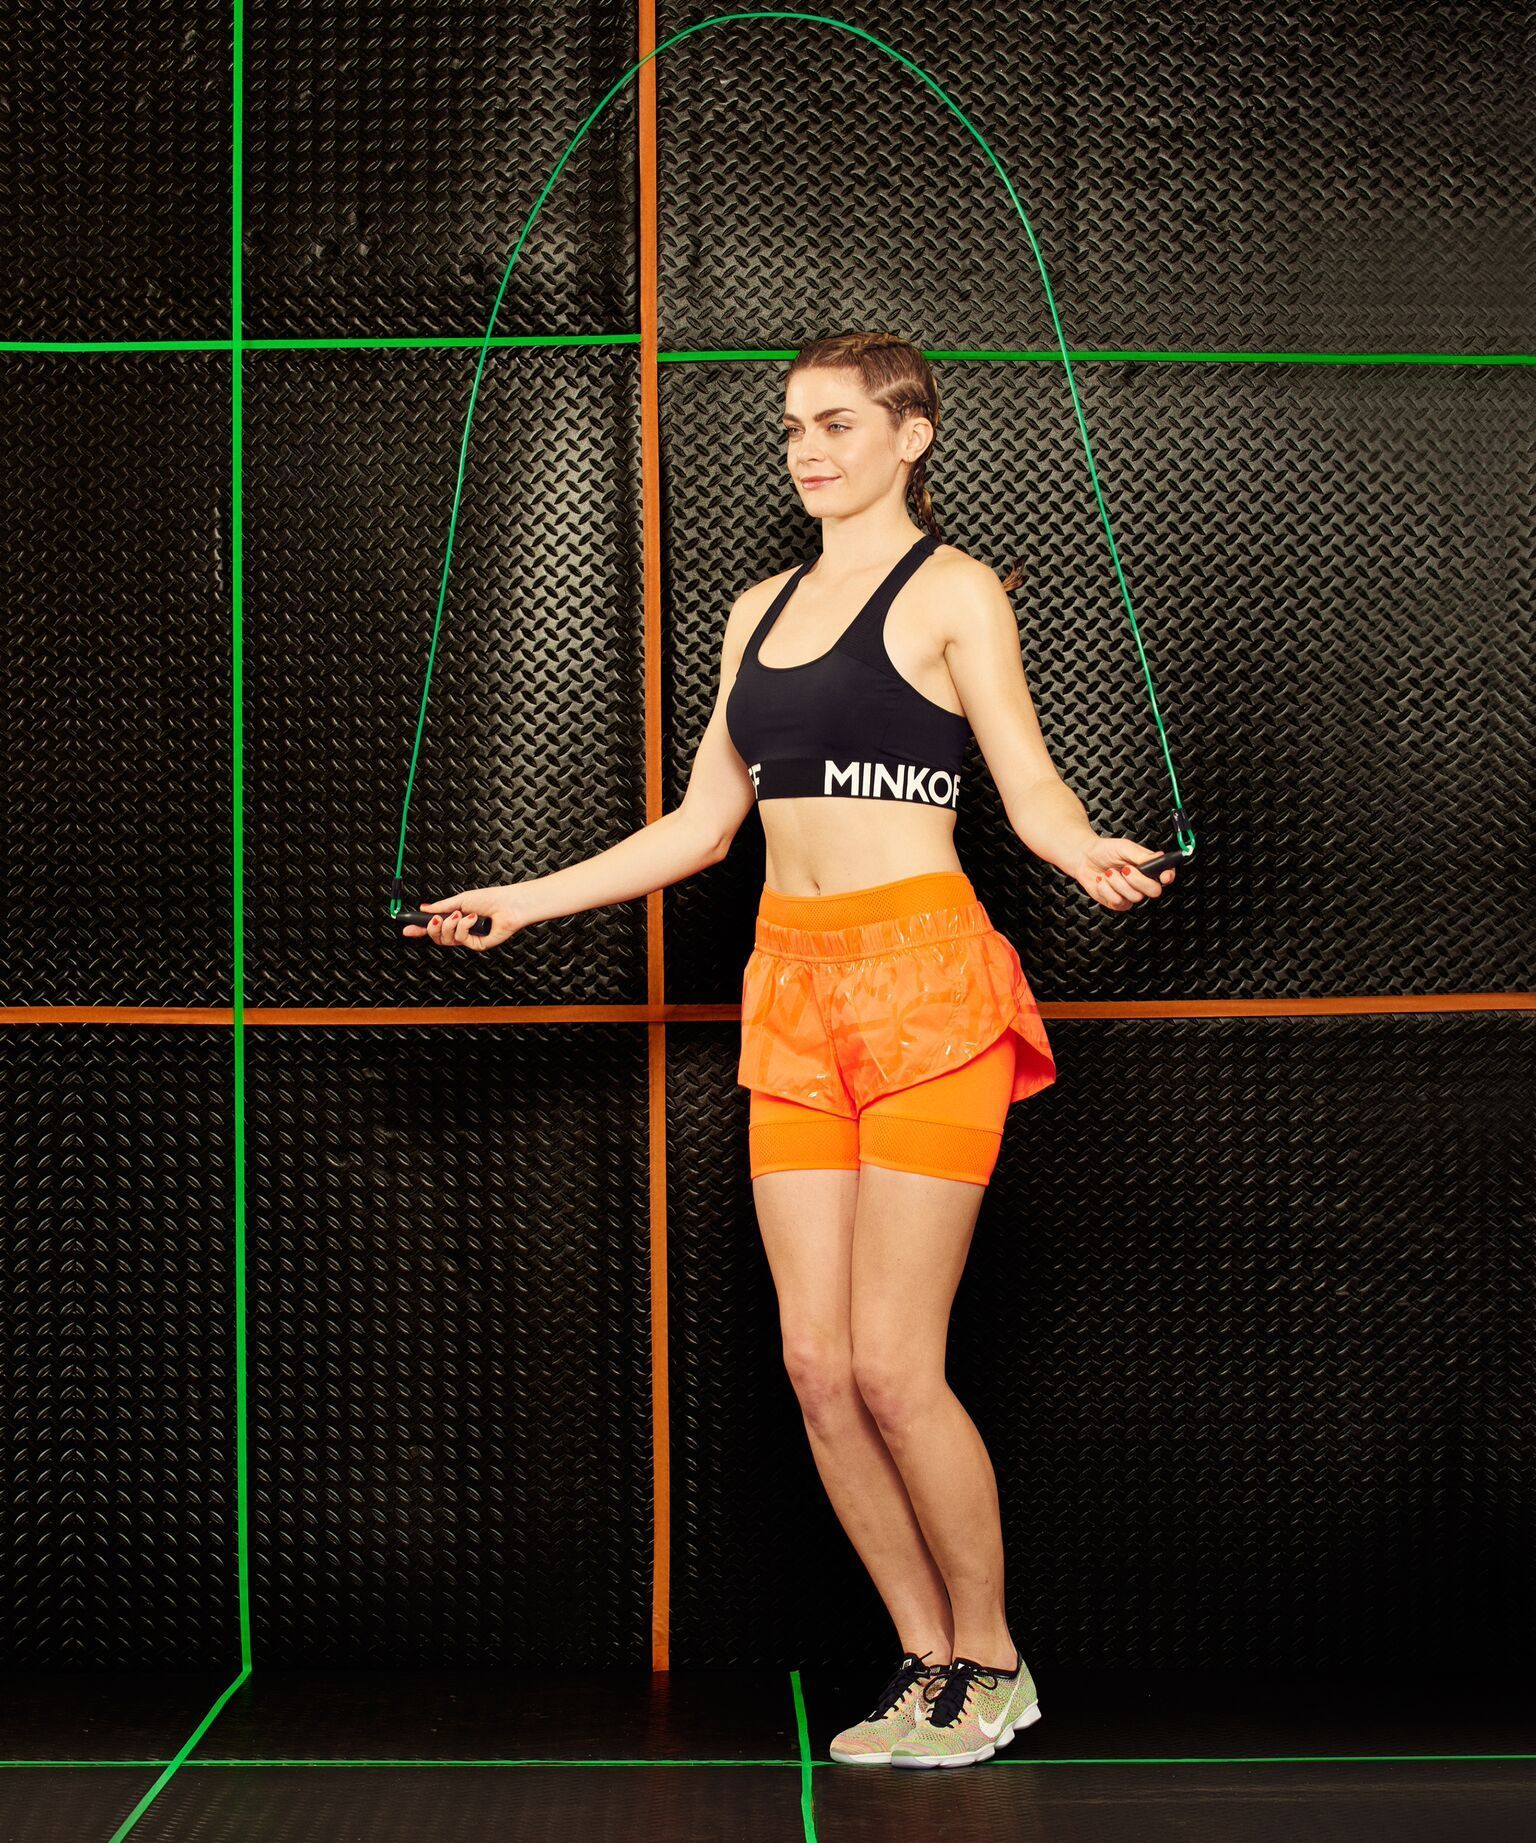 Jump Rope Workout Routine Tips | How to start a jump-rope routine (and actually not quit). #refinery29 http://www.refinery29.com/jump-rope-workout-tips